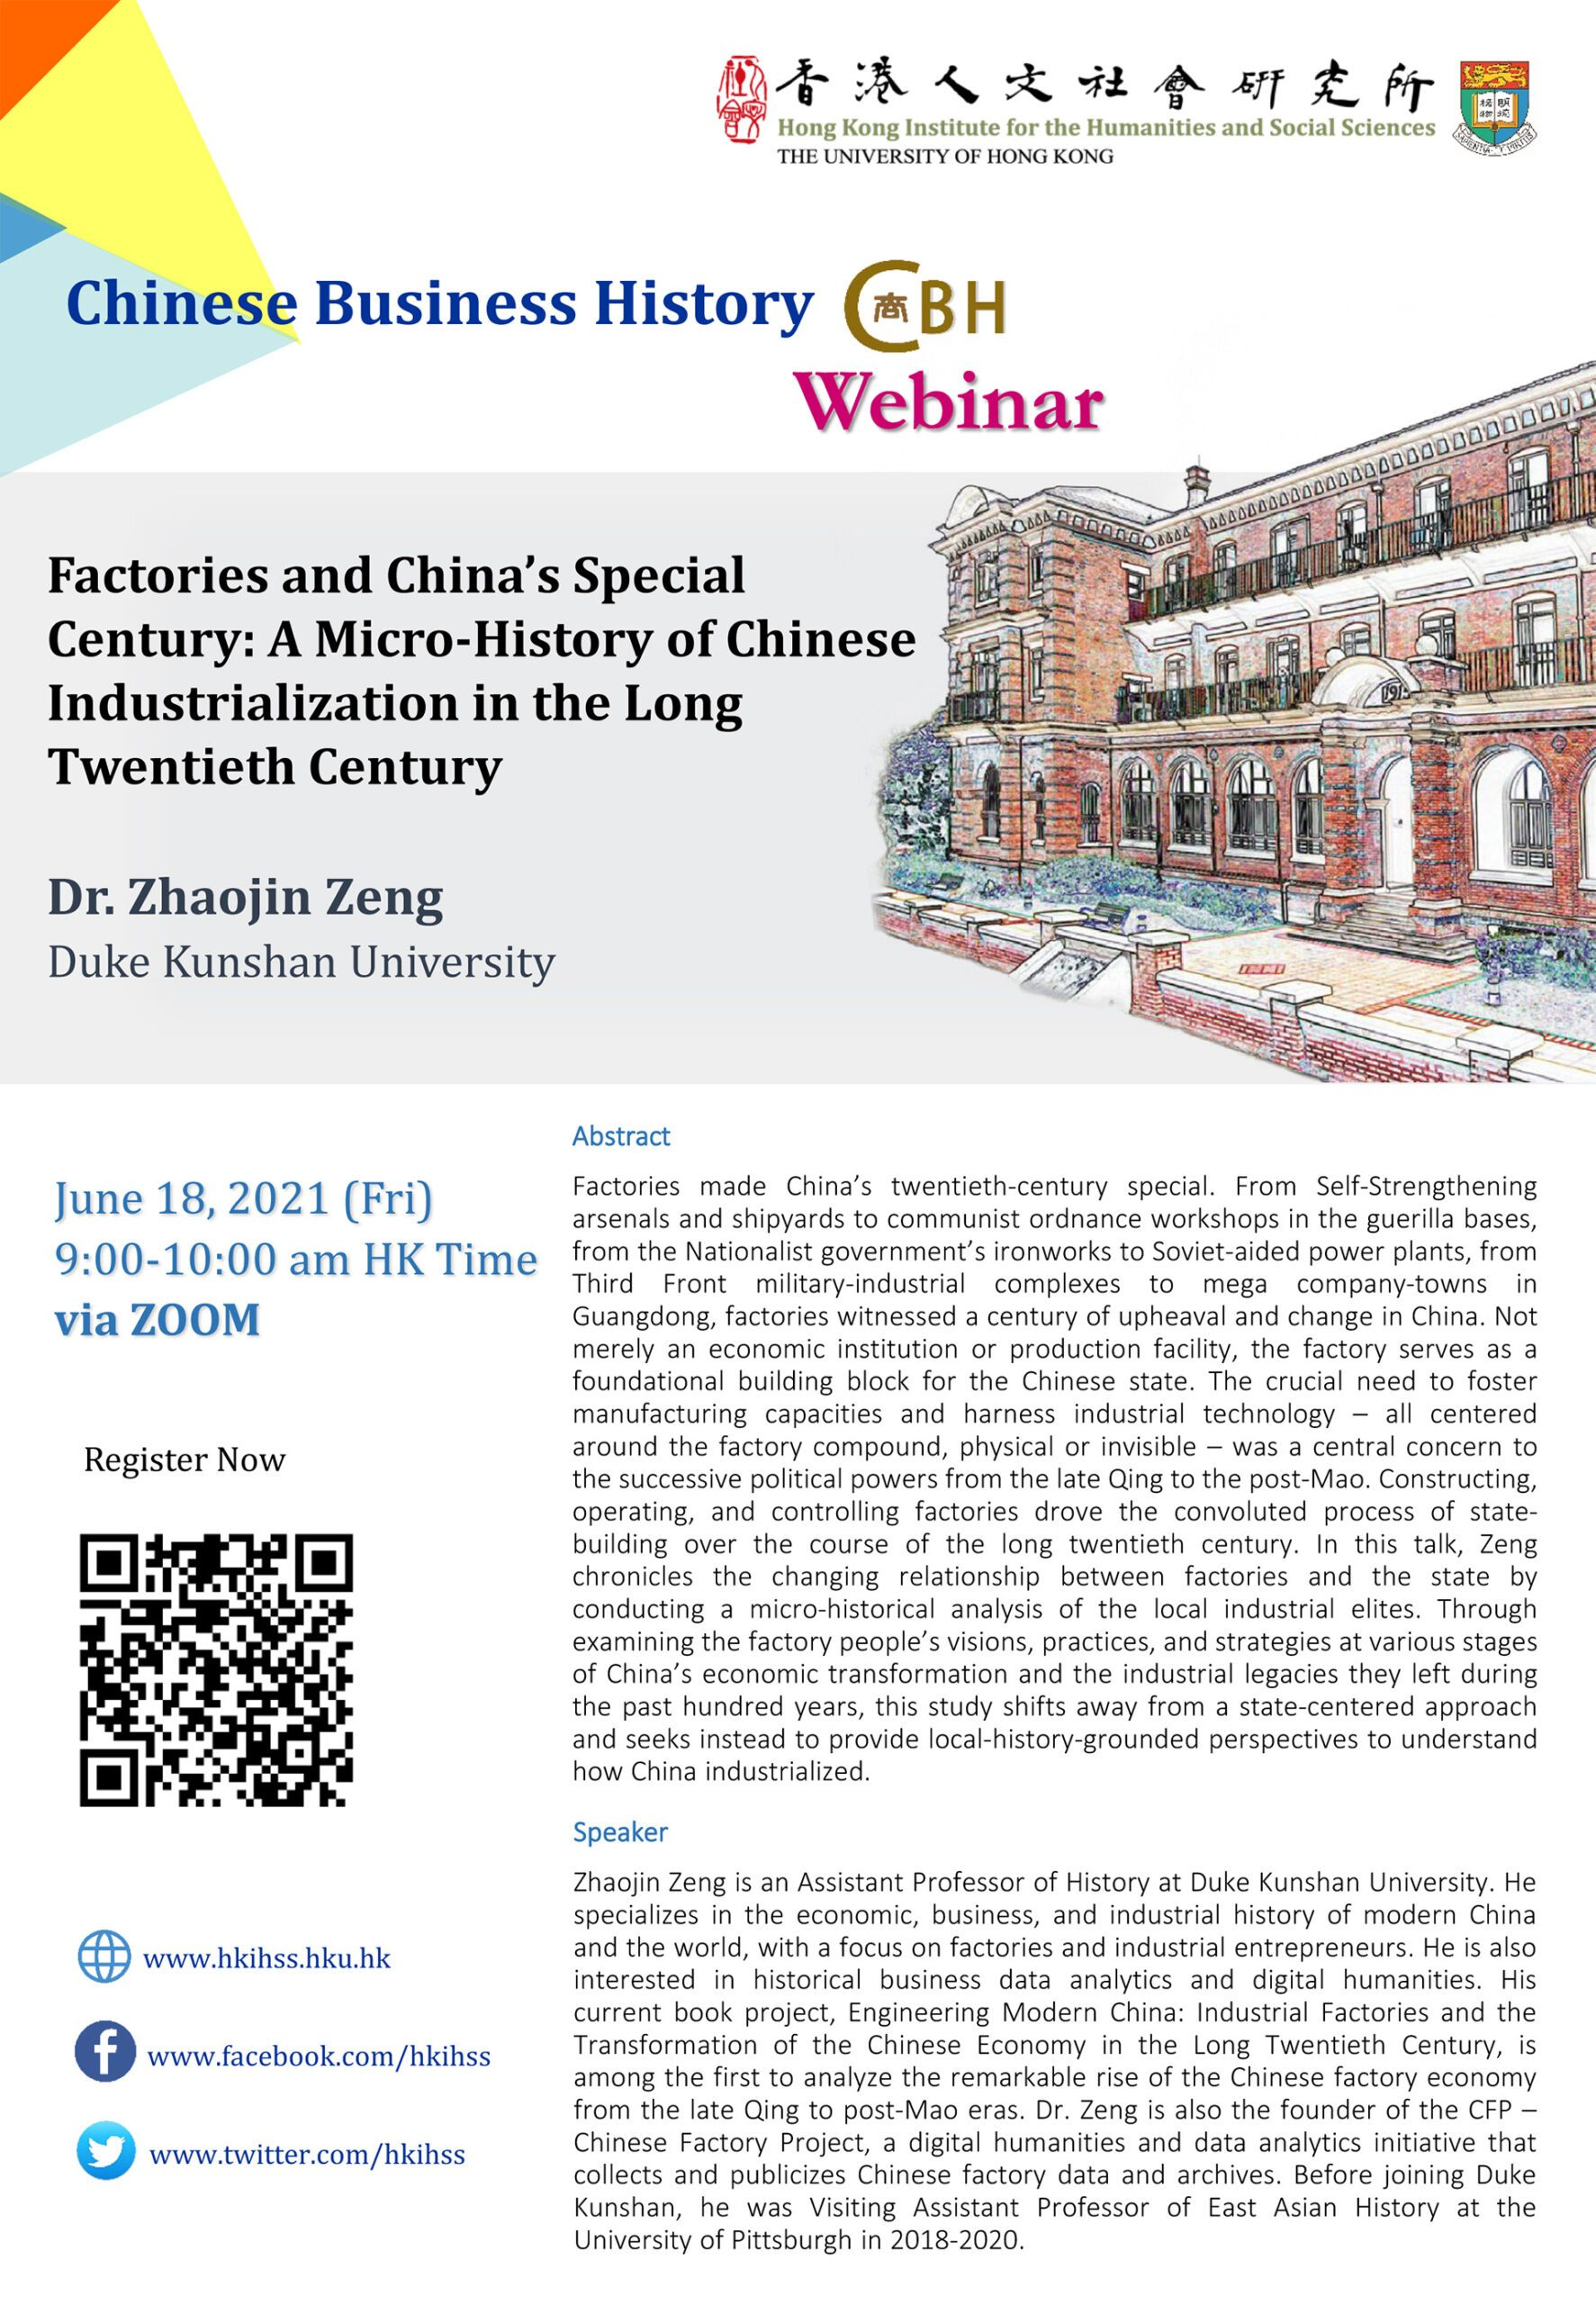 """Chinese Business History Webinar on """"Factories and China's Special Century: A Micro-History of Chinese Industrialization in the Long Twentieth Century"""" by Dr. Zhaojin Zeng (June 18, 2021)"""